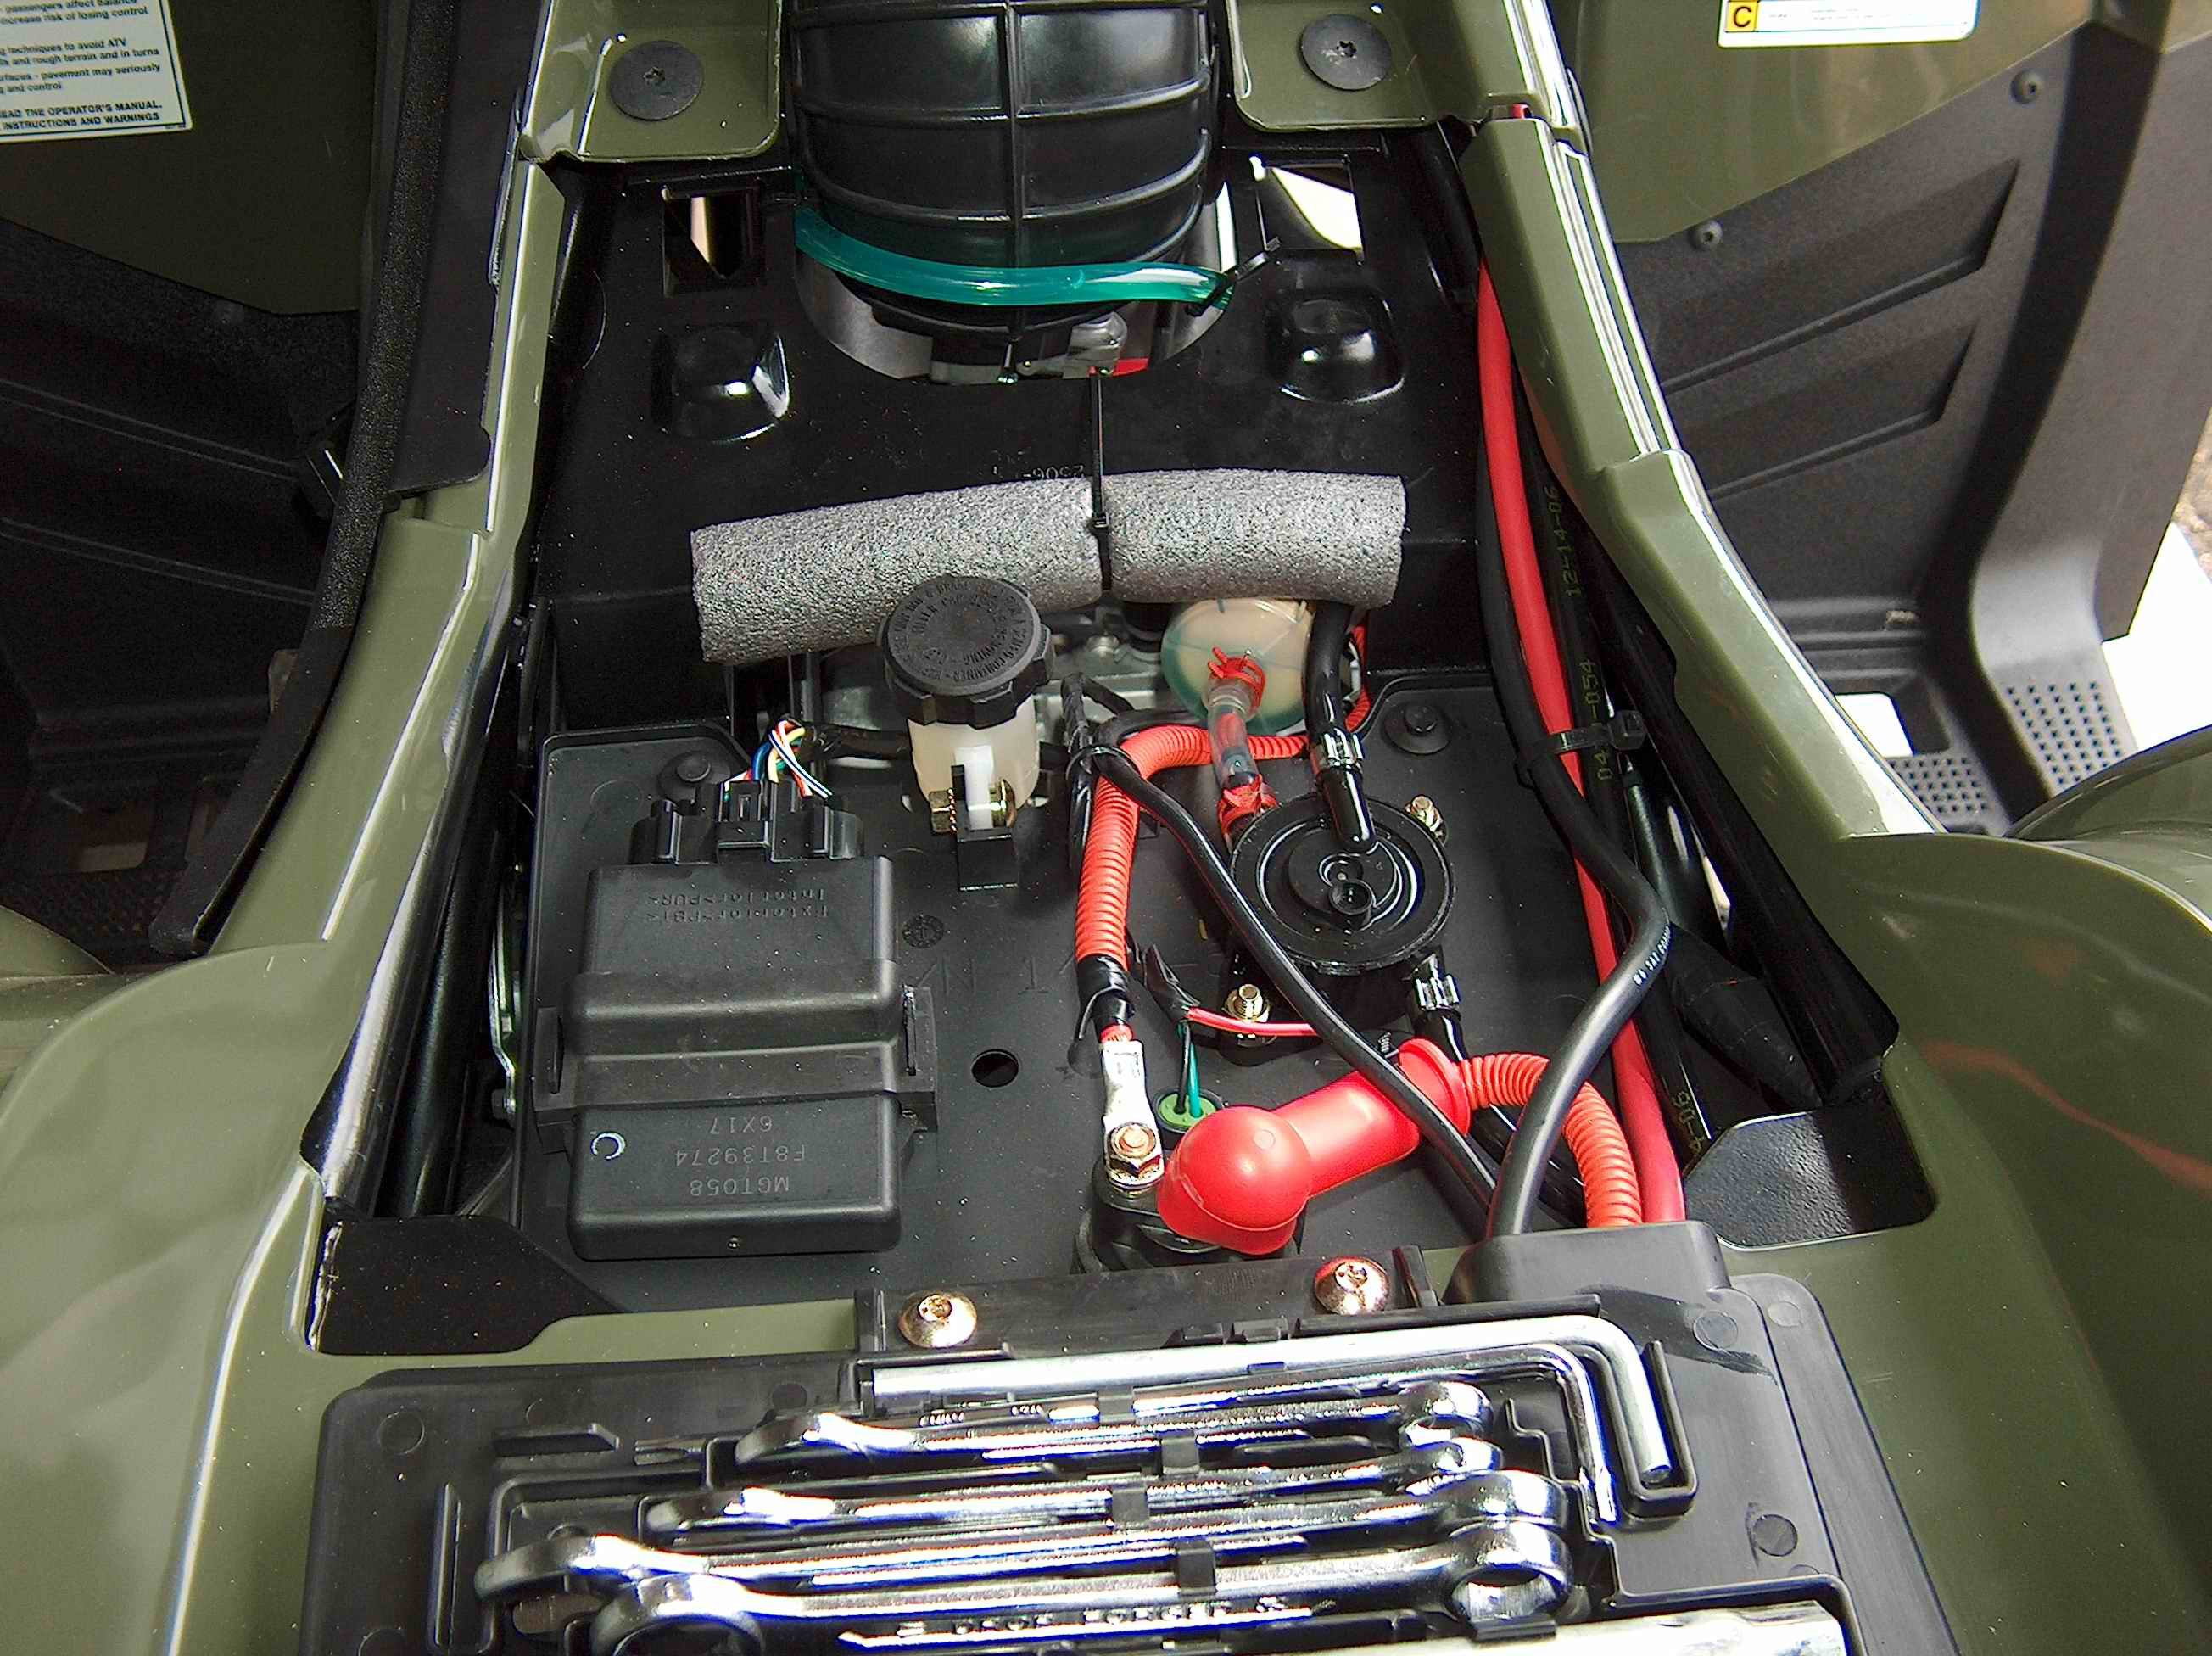 2008 Polaris Fuse Box Nice Place To Get Wiring Diagram Rzr Light Bar 2007 Todays Rh 13 15 9 1813weddingbarn Com Sportsman 500 Location